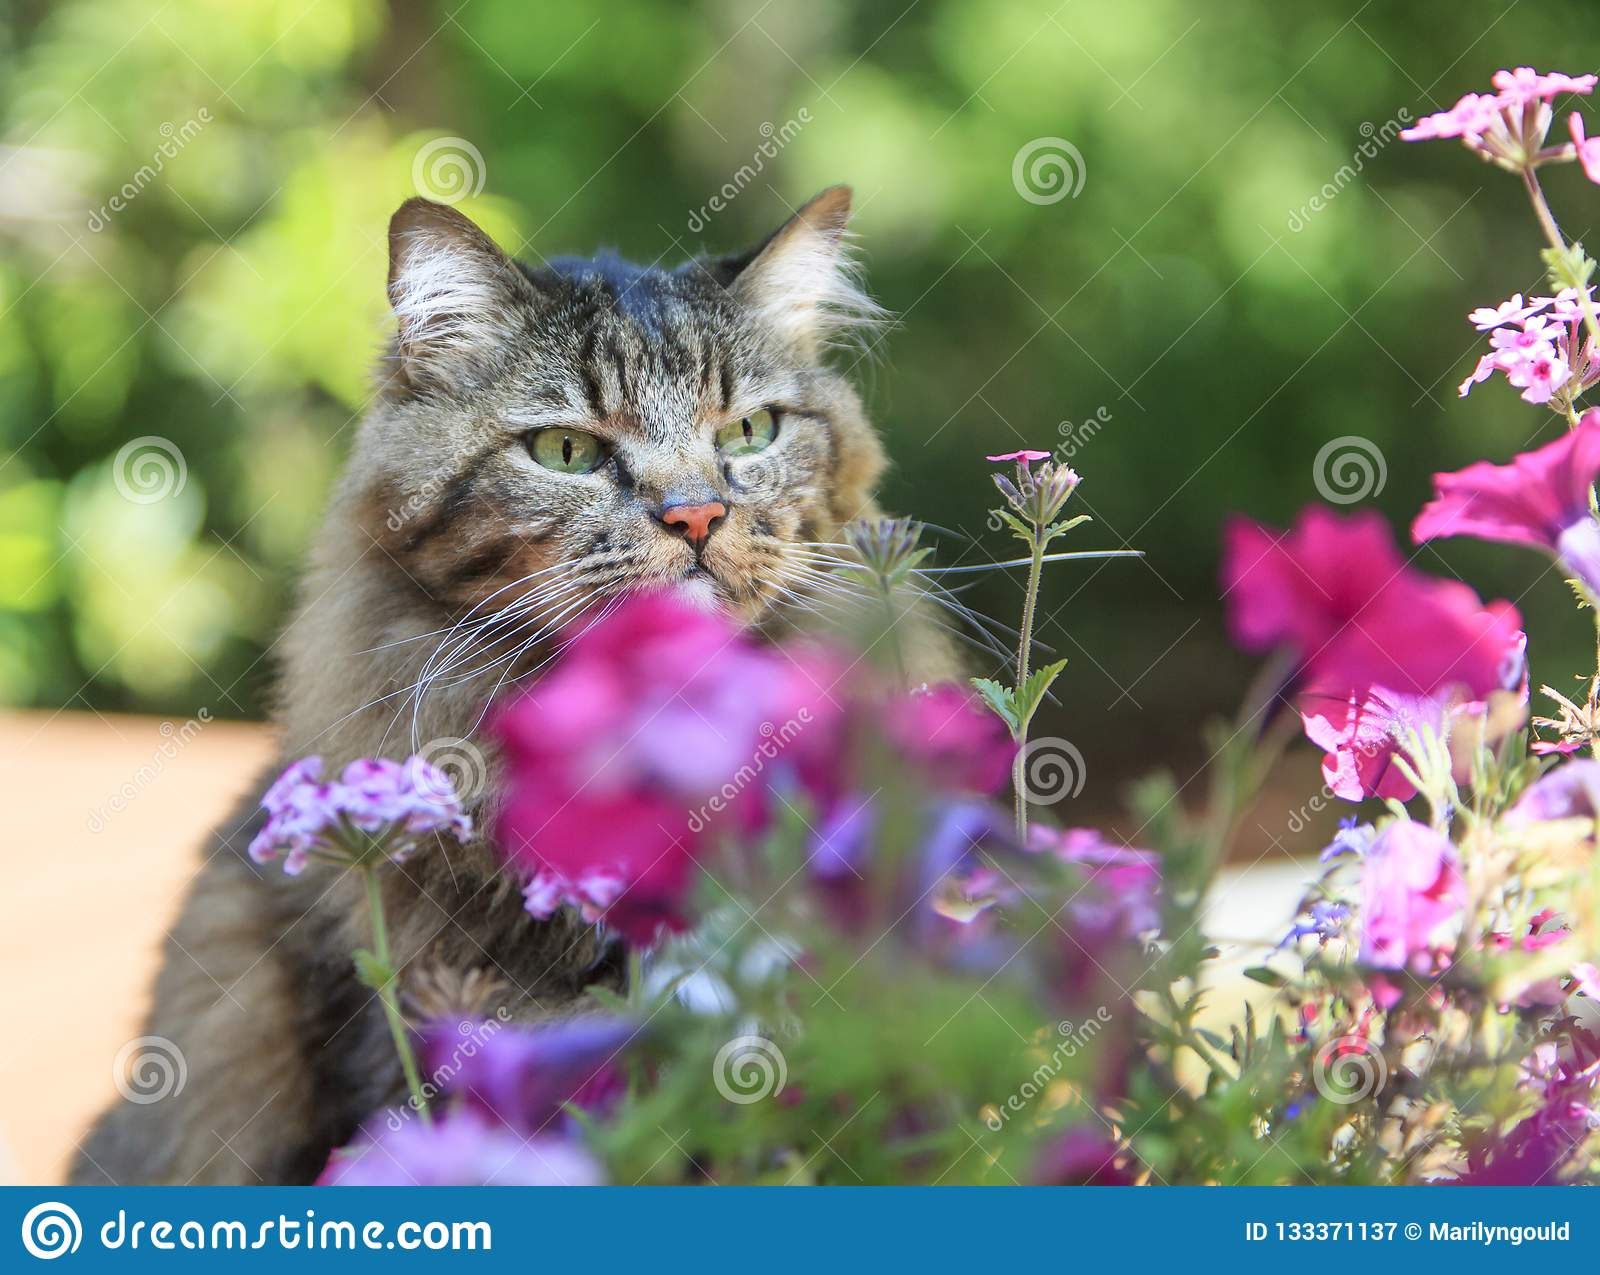 Cat Intently Focused on Small Flower